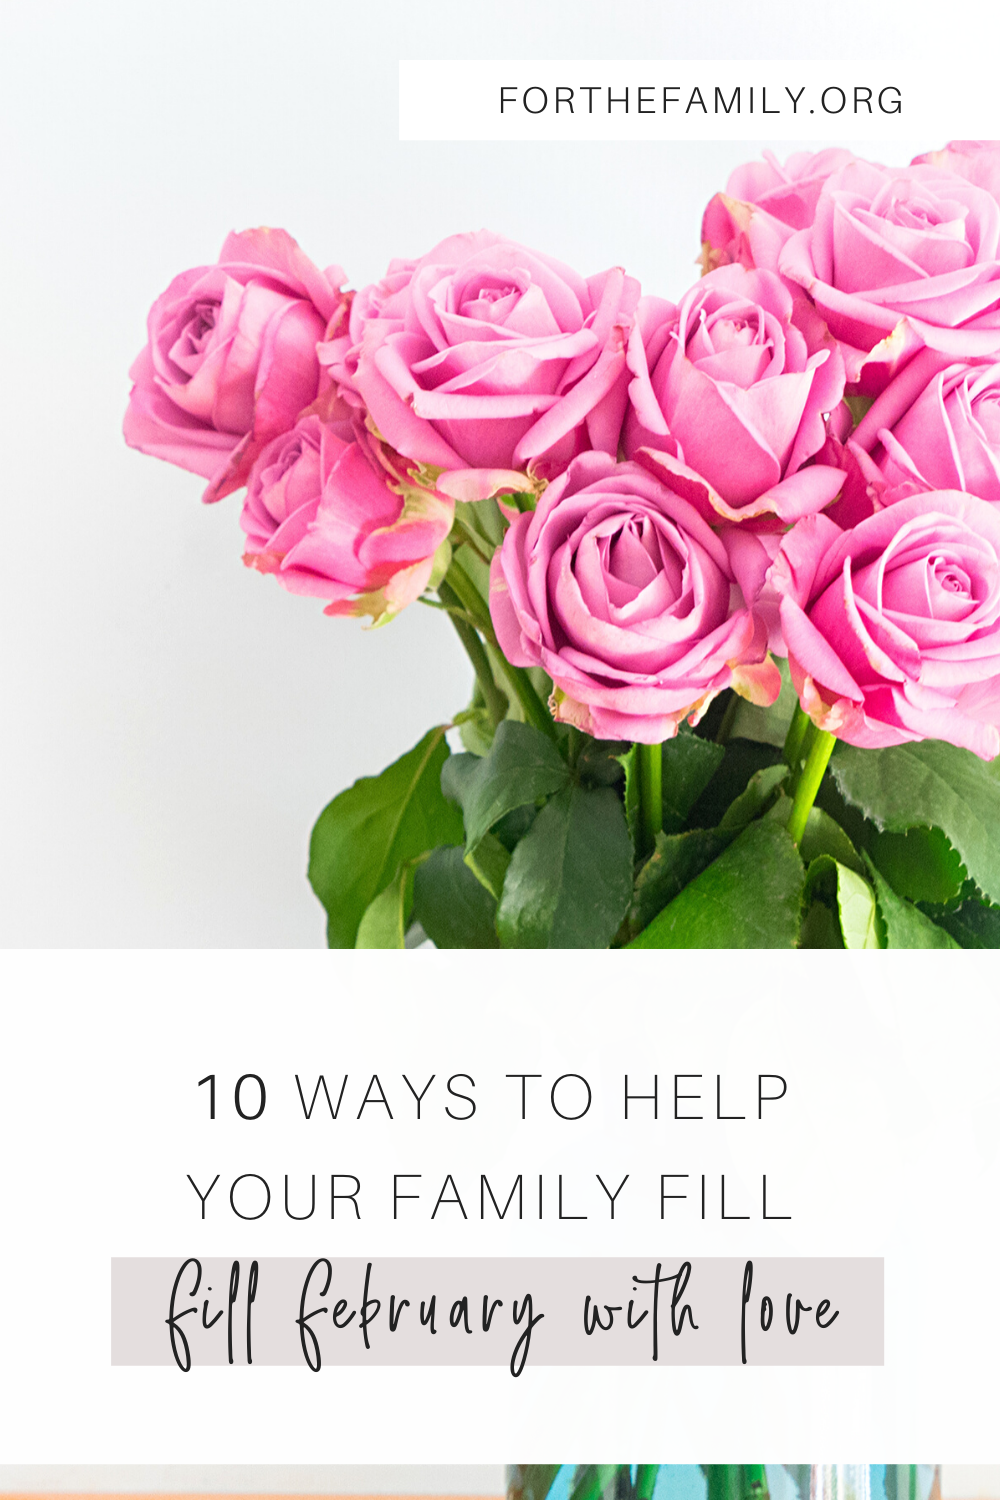 When February arrives we don't need to simply focus on one special day. Instead, we can see it as a month in which we can help our family learn about loving each other and loving God more. If you're interested in spreading the love this February, here are 10 ways to help your family fill February with love!